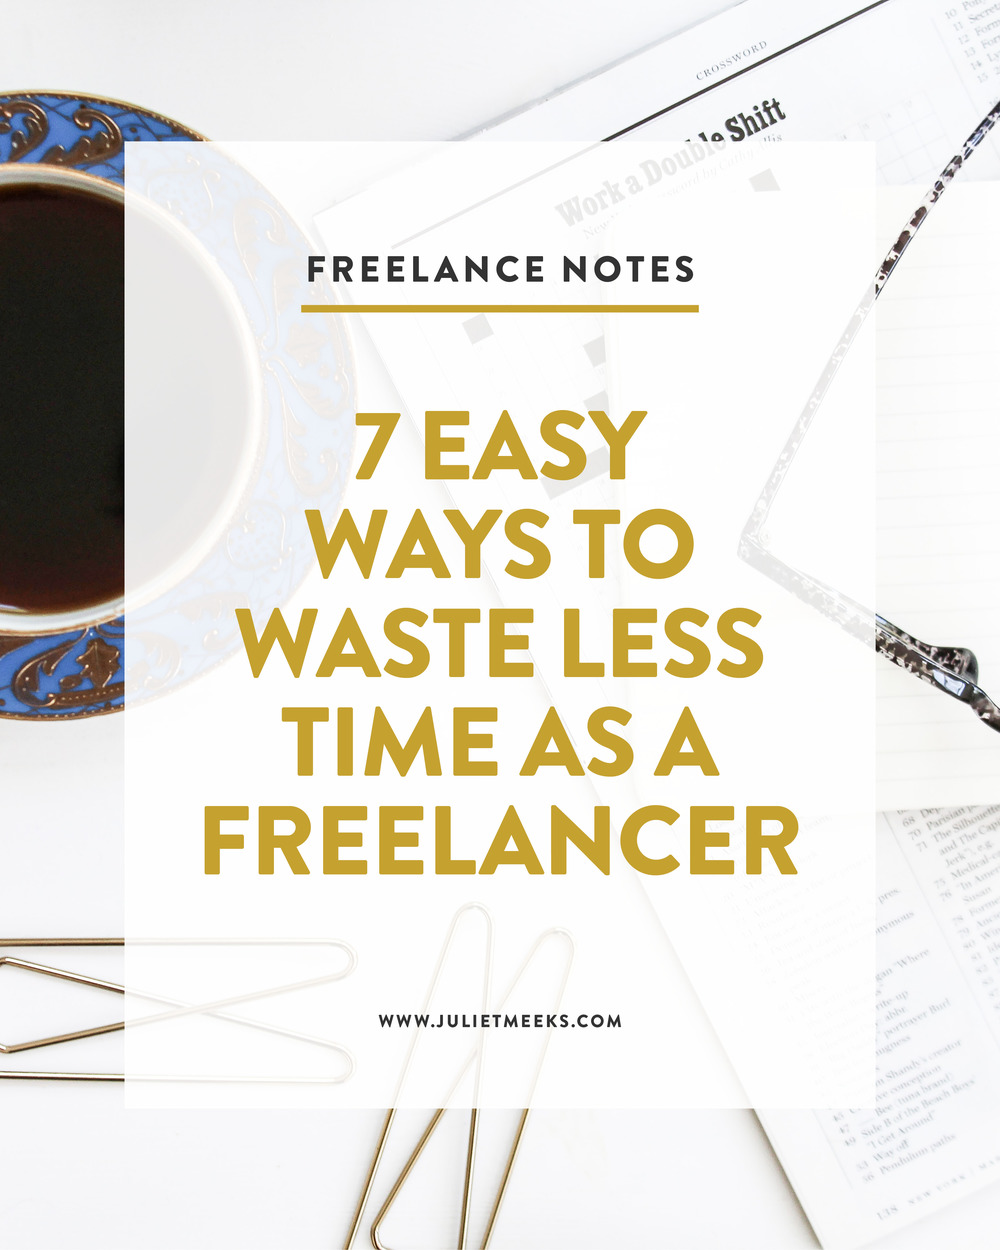 7 Easy Ways to Waste Less Time as a Freelancer